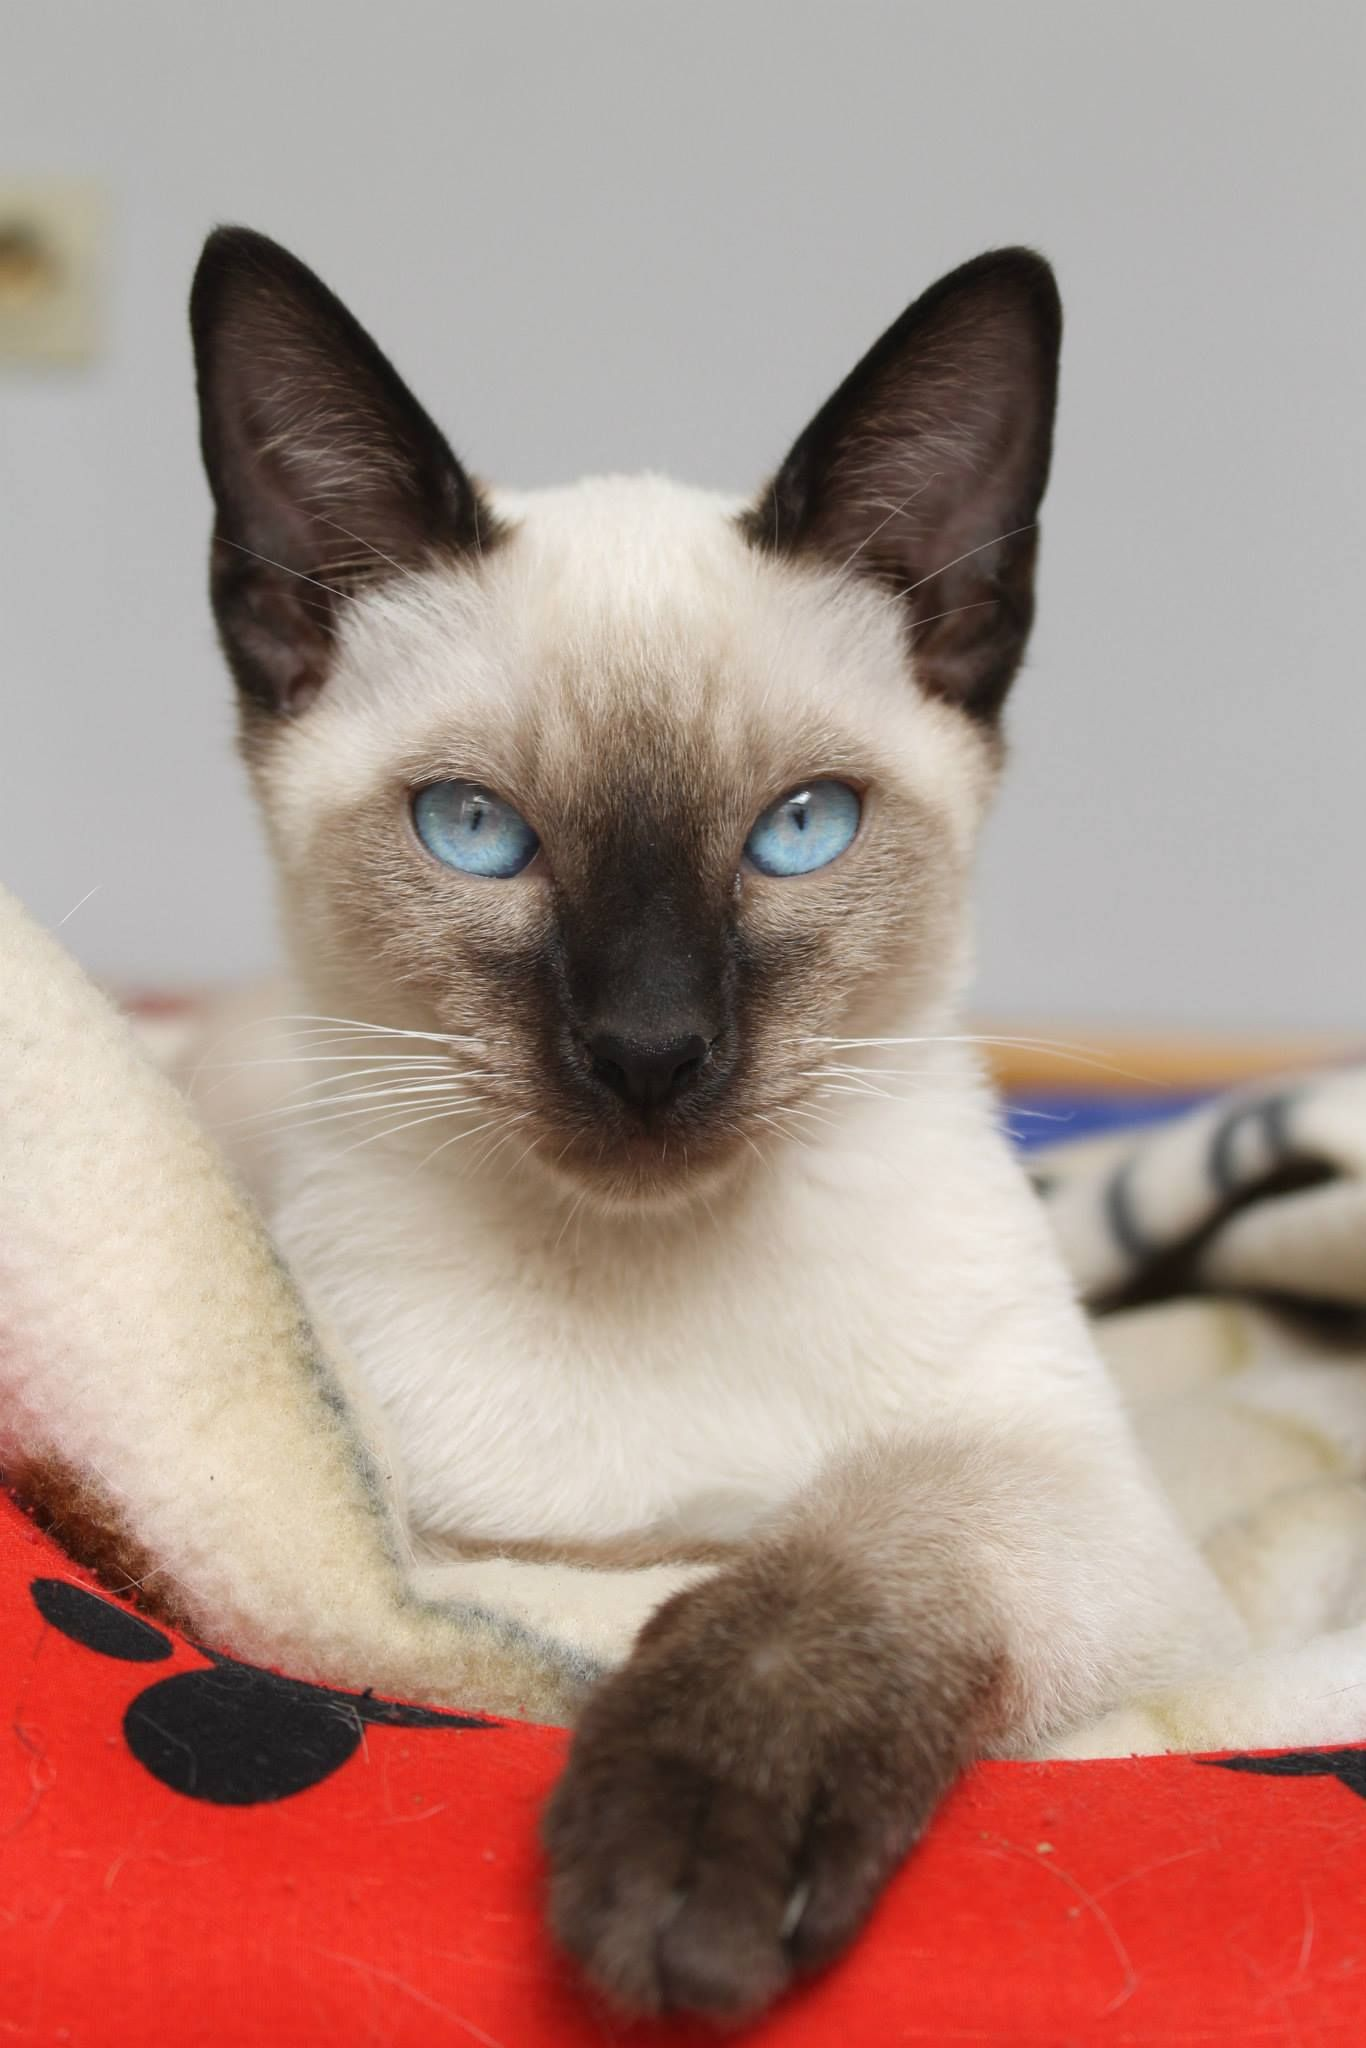 Https Www Facebook Com Komaewsthaicattery Photos A 344108345780977 1073741963 148030562055424 379949422196869 Type 1 S Siamese Cats Cats Cats And Kittens